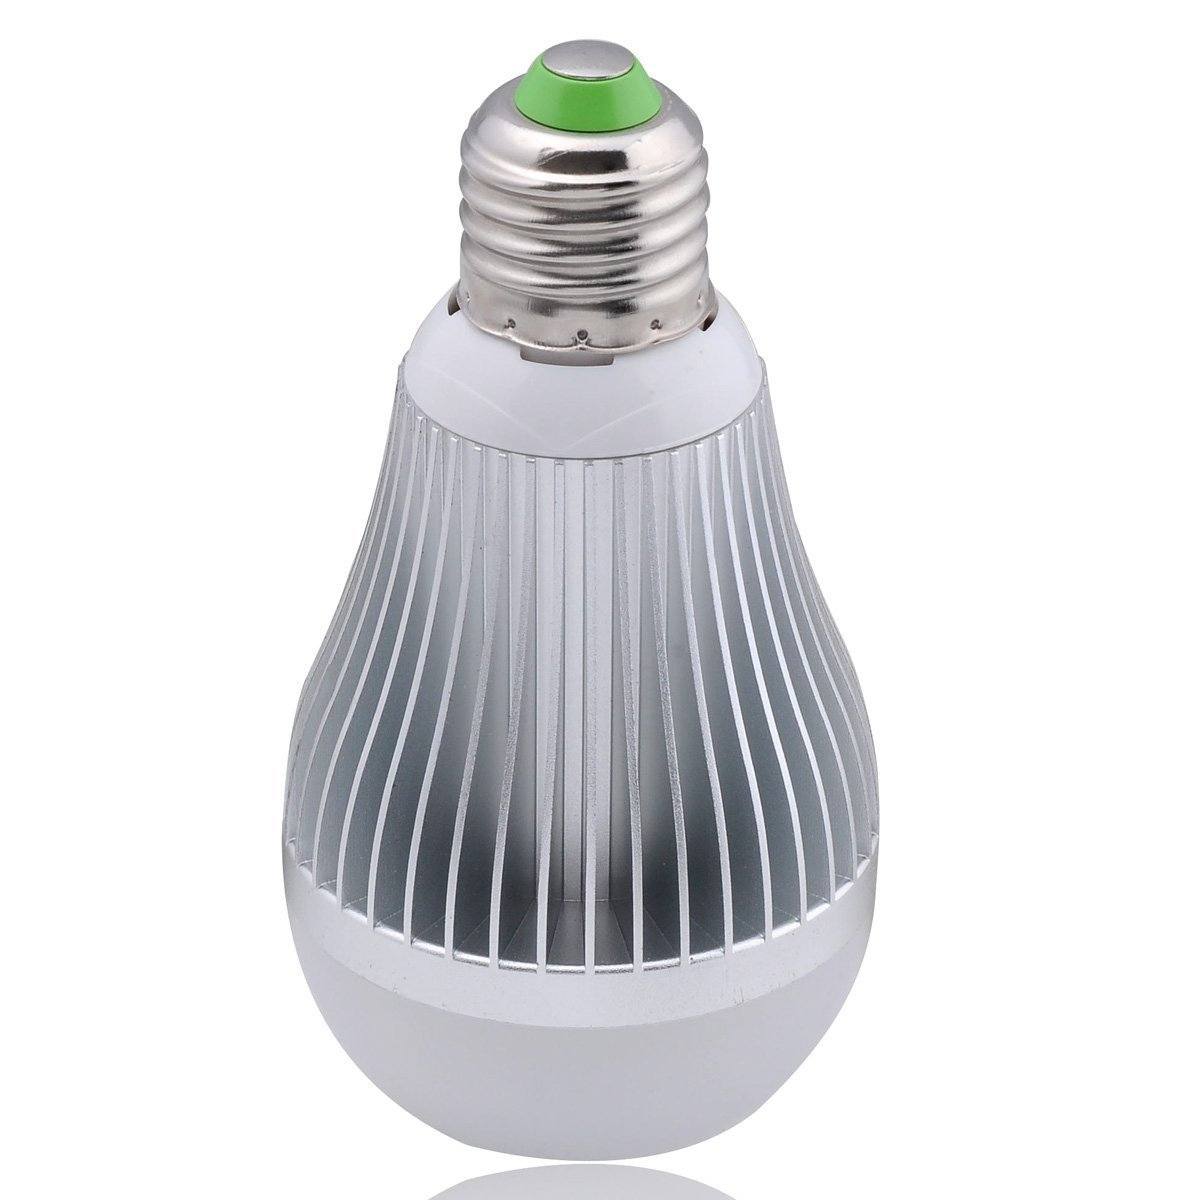 Amazon.com : SODIAL(R) 12W E27 16 Color Changing RGB LED Light Lamp Bulb 85-265V + IR Remote Control : Garden & Outdoor